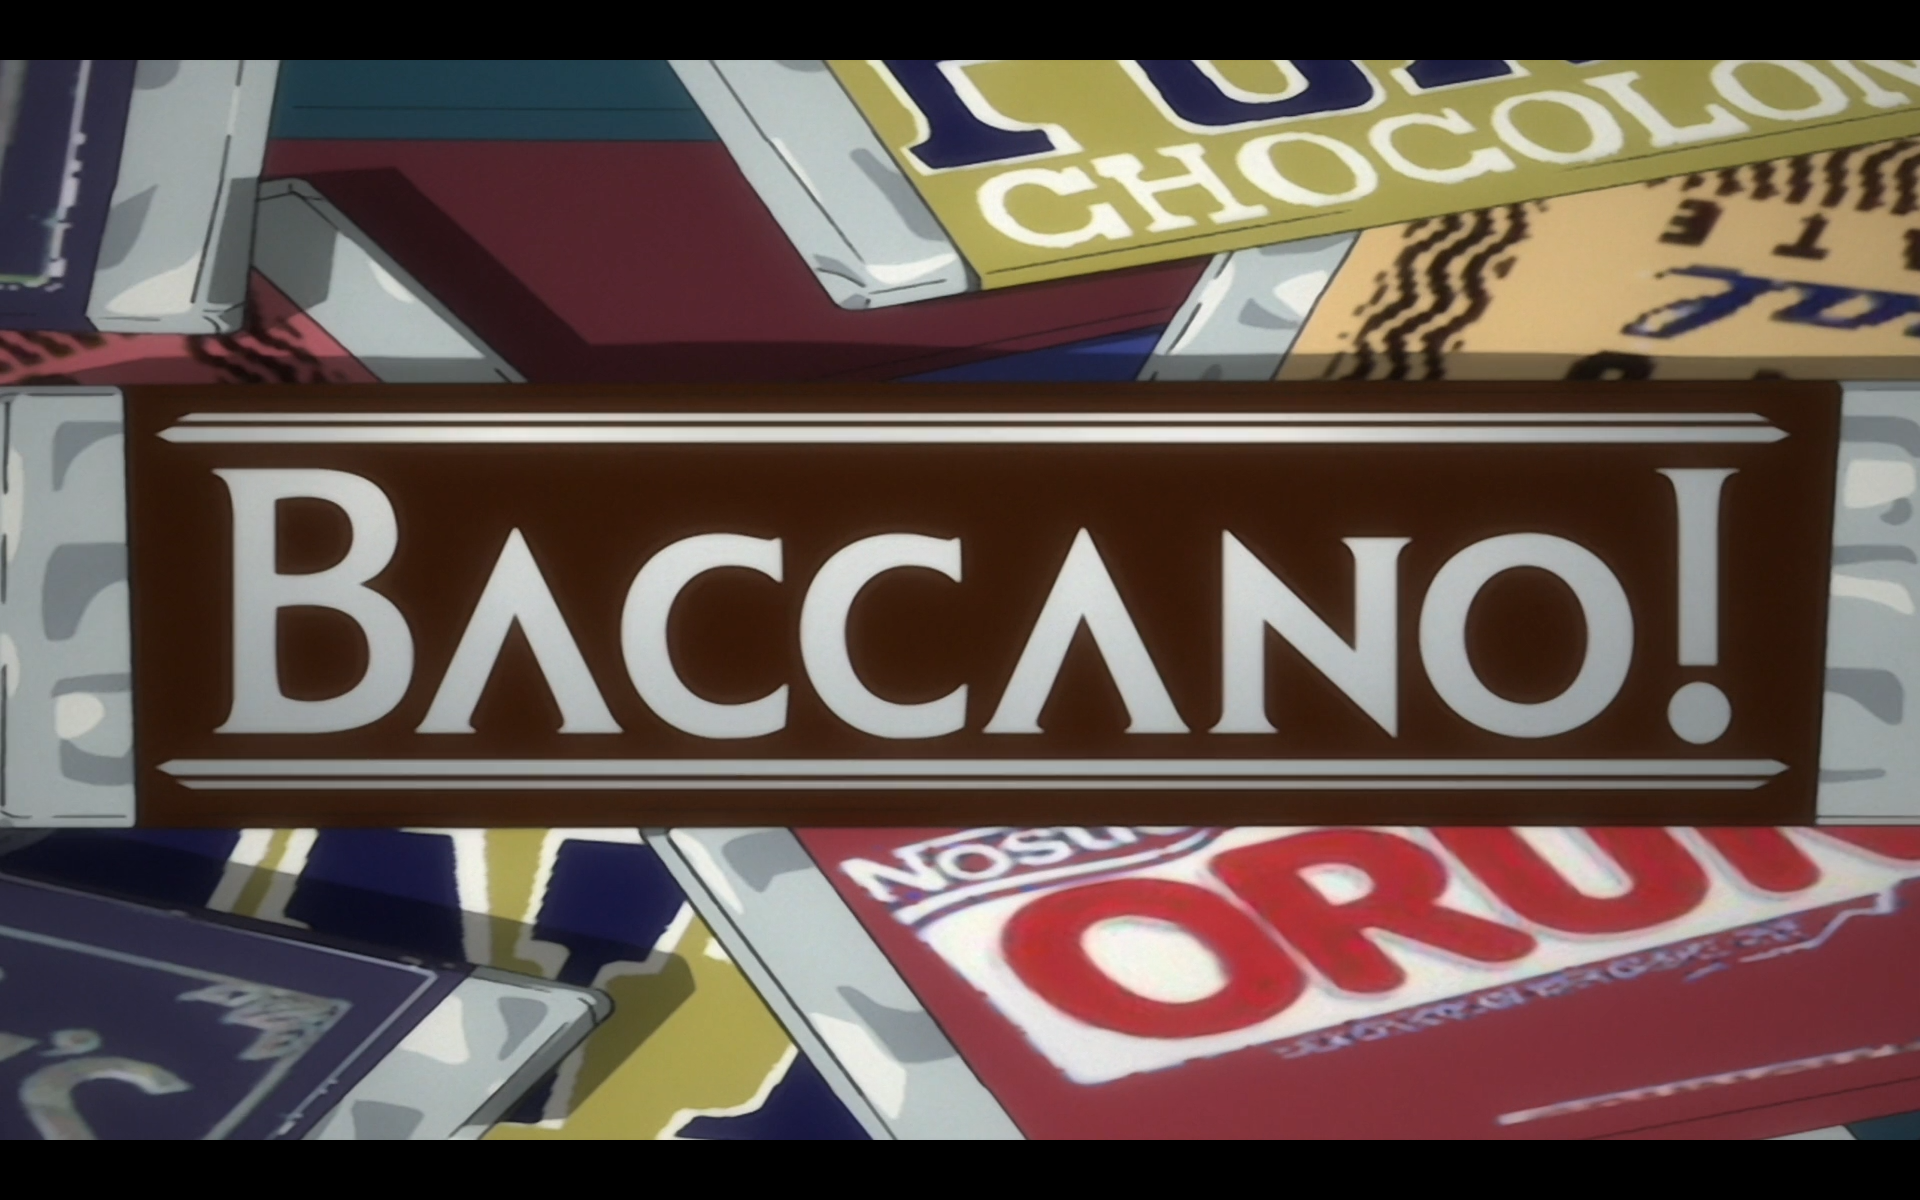 Baccano! Full HD Wallpaper and Background | 1920x1200 | ID:245476